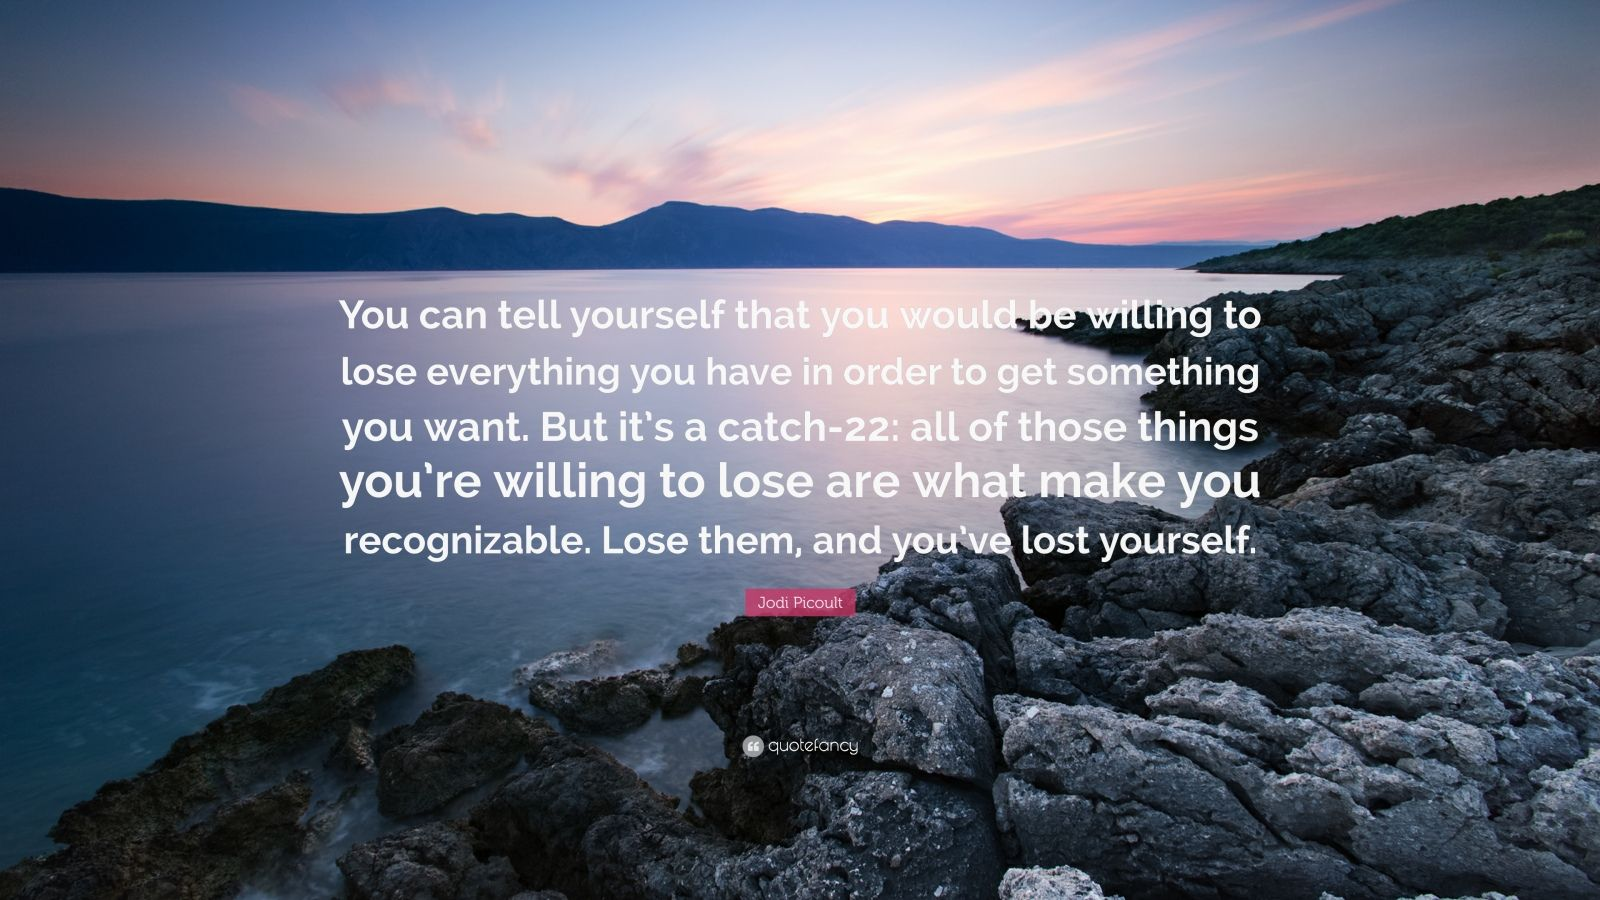 "Jodi Picoult Quote: ""You can tell yourself that you would be willing to lose everything you have in order to get something you want. But it's a catch-22: all of those things you're willing to lose are what make you recognizable. Lose them, and you've lost yourself."""